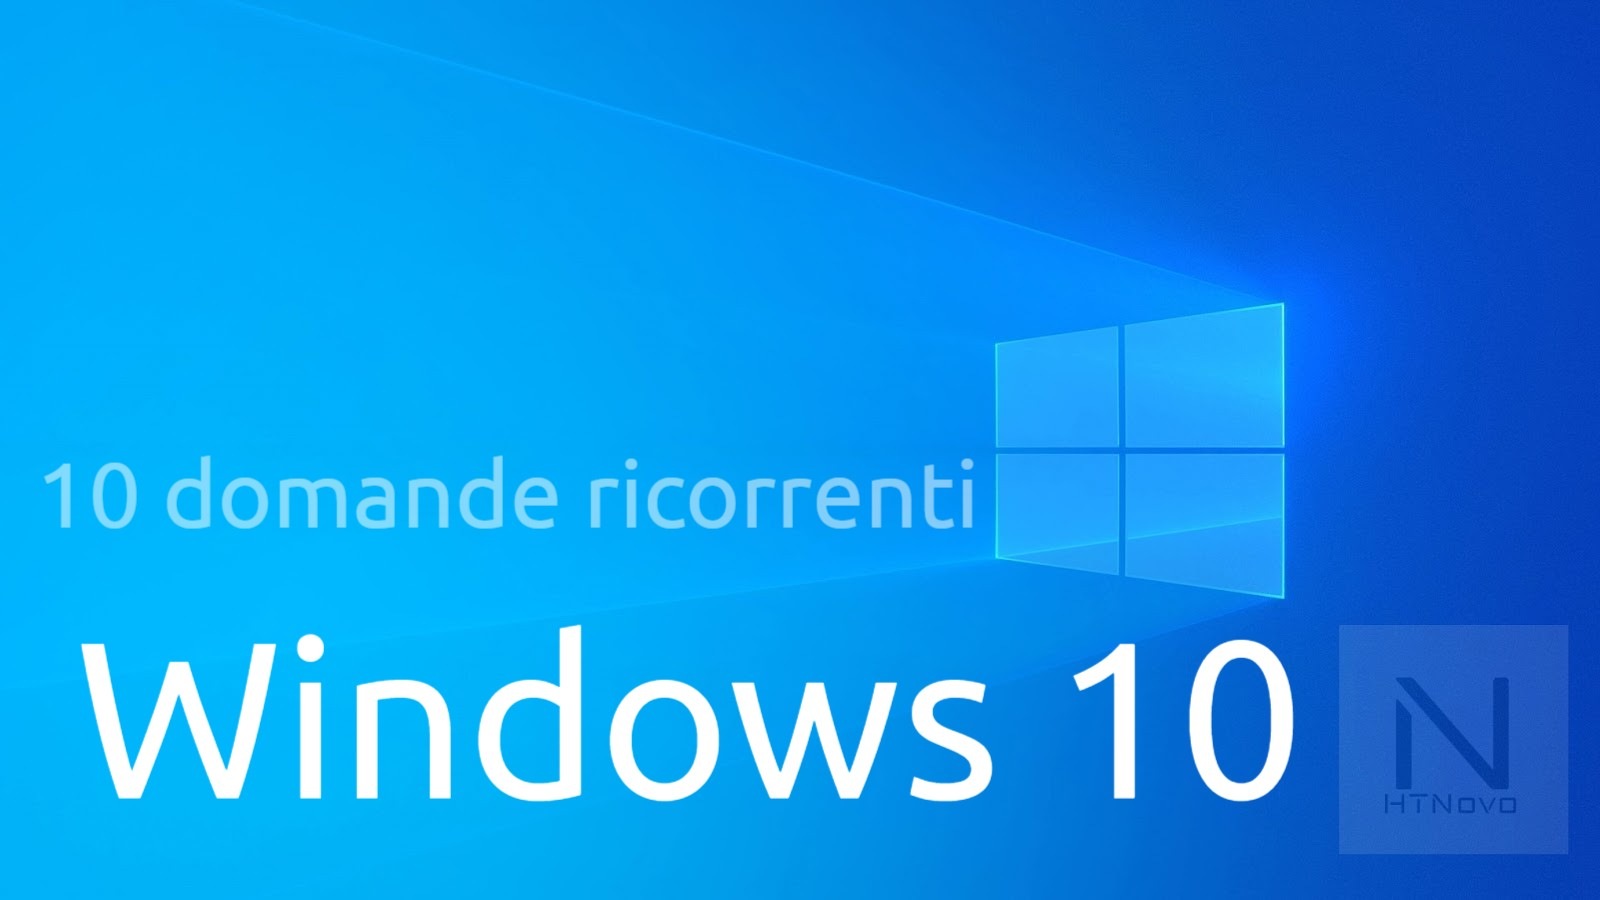 10-domande-ricorrenti-Windows-10